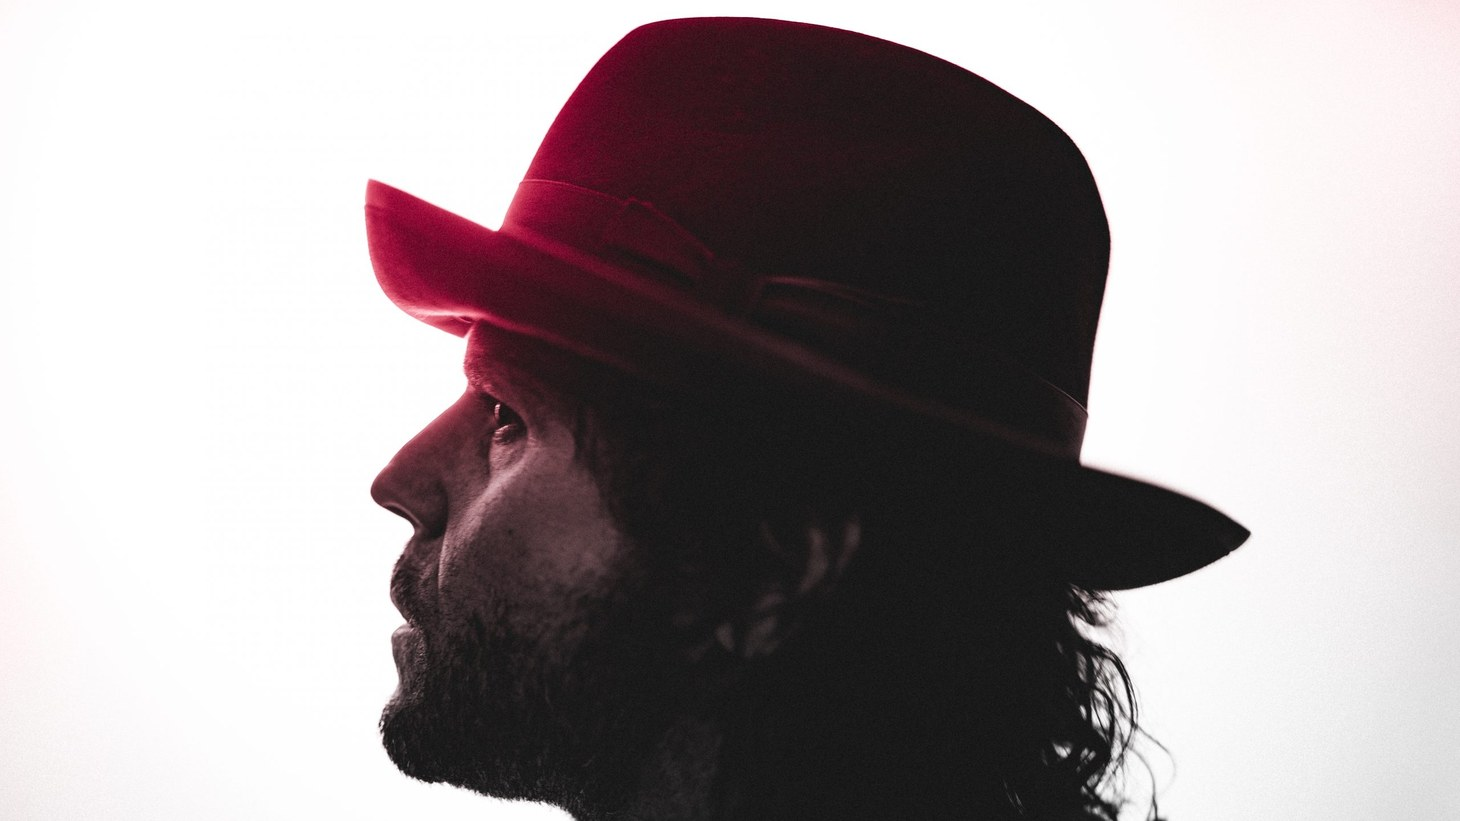 Once Langhorne Slim began to grapple with the issues that tormented him, he turned emotions that filled him with angst into power and got an album's worth of songs out it.